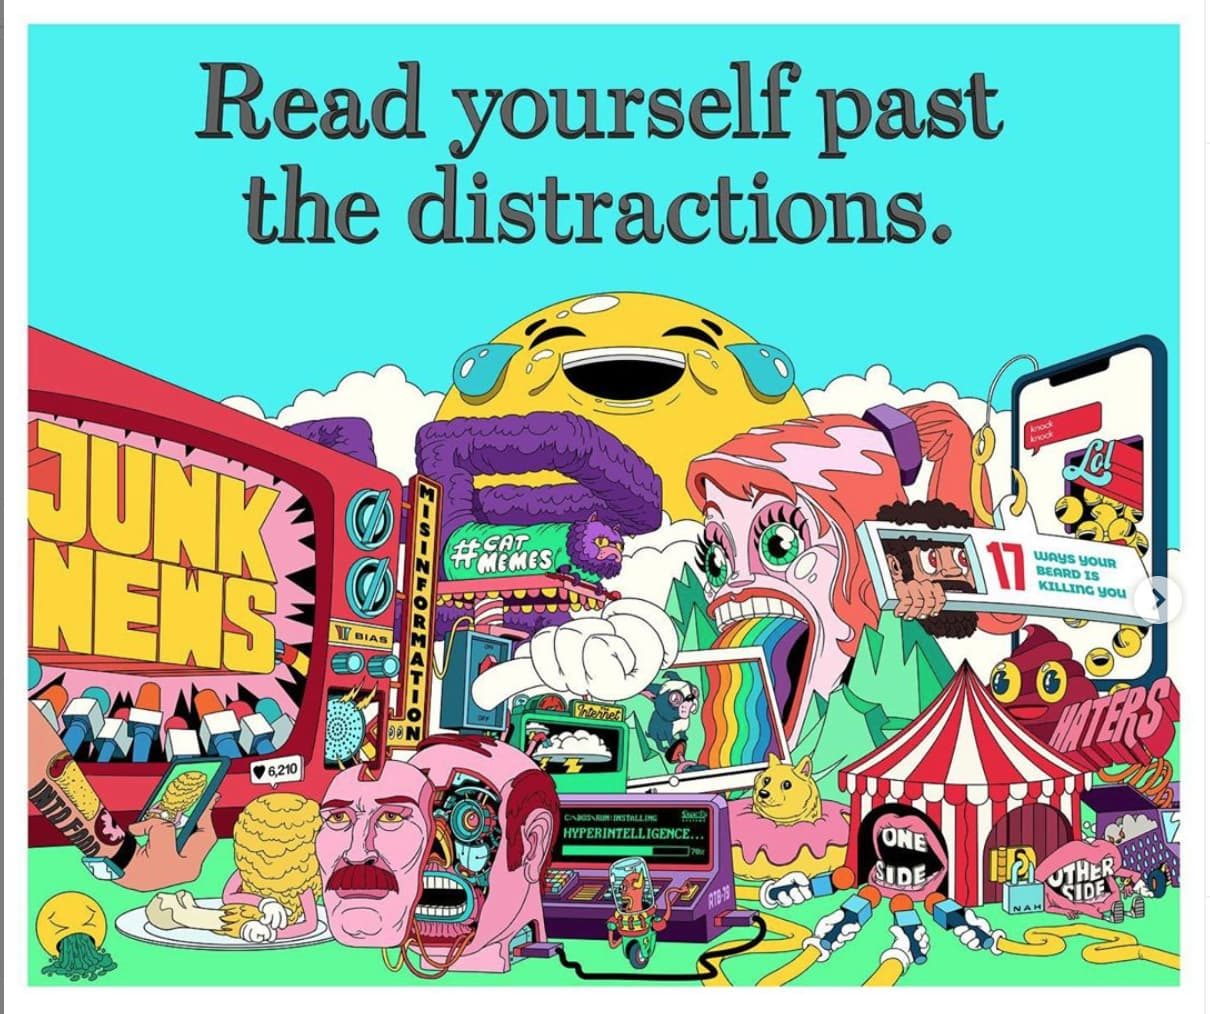 Wall Street Journal - Read Yourself Past The Distractions